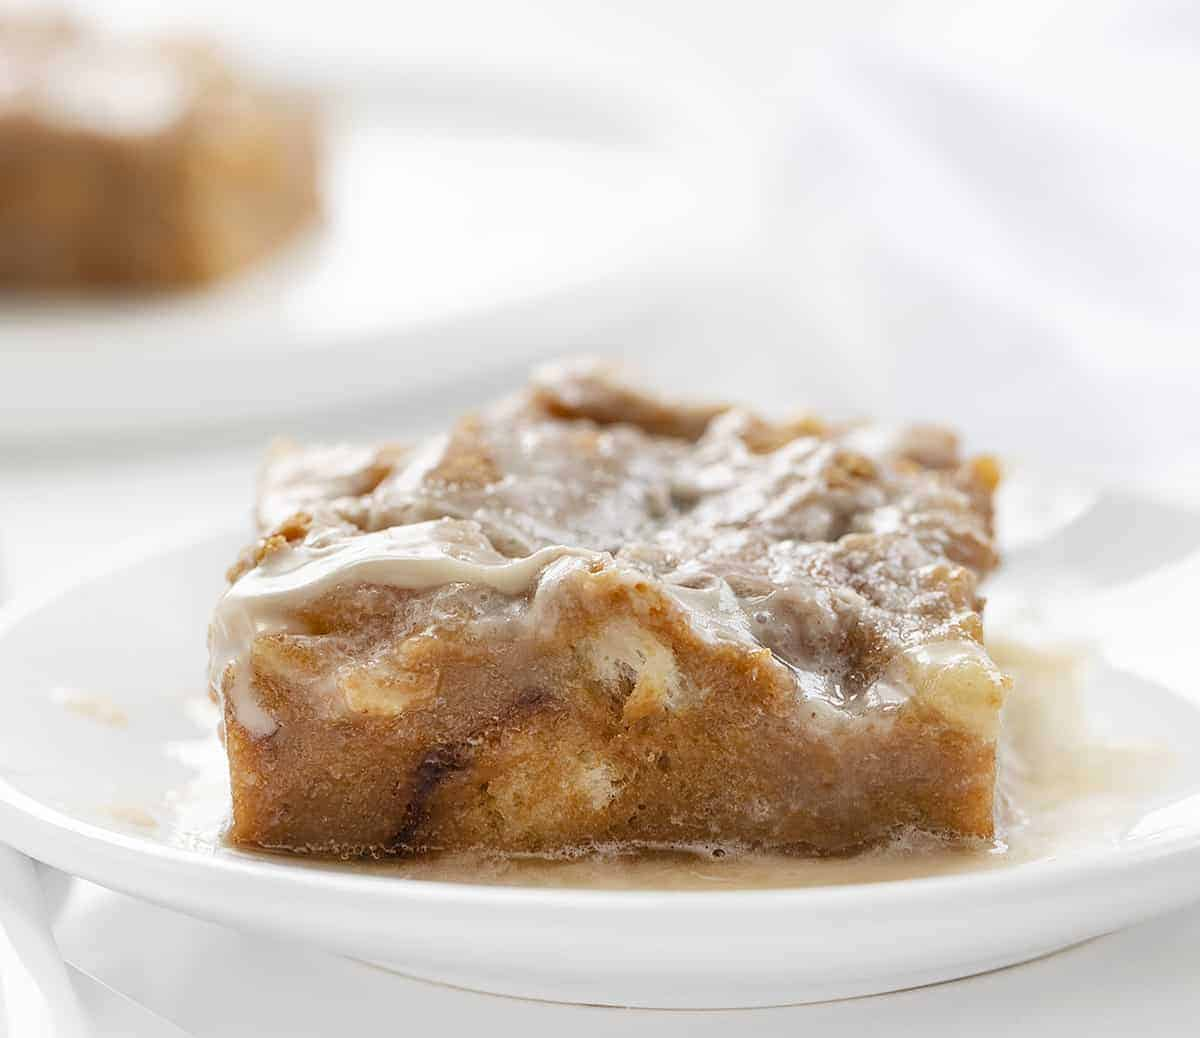 One Slice of Chocolate Caramel Bread Pudding on a White Plate